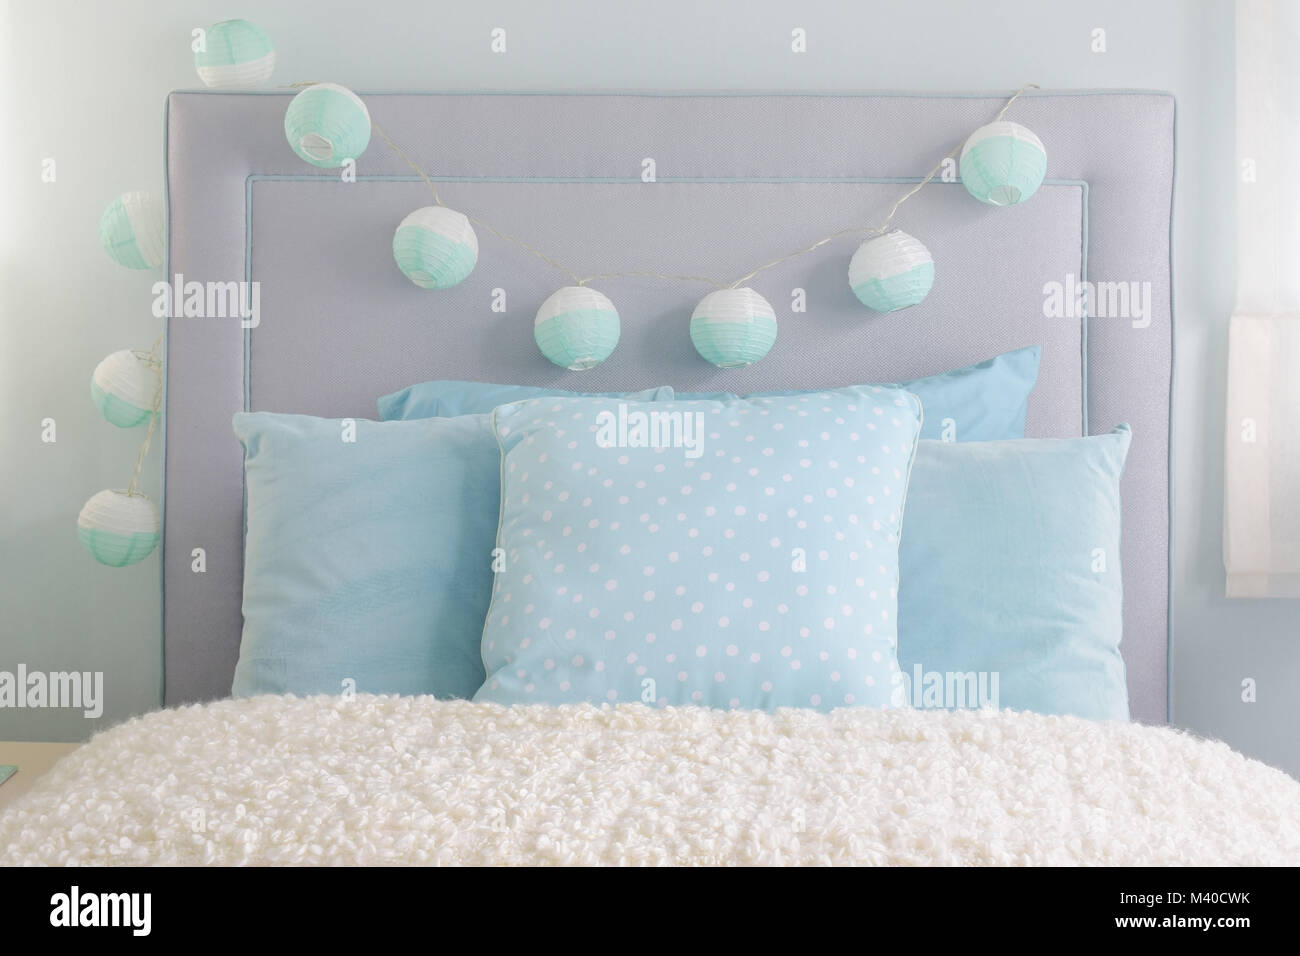 Light Blue Pillows Setting On Bed With Decorative Ball On Headboard Stock Photo Alamy